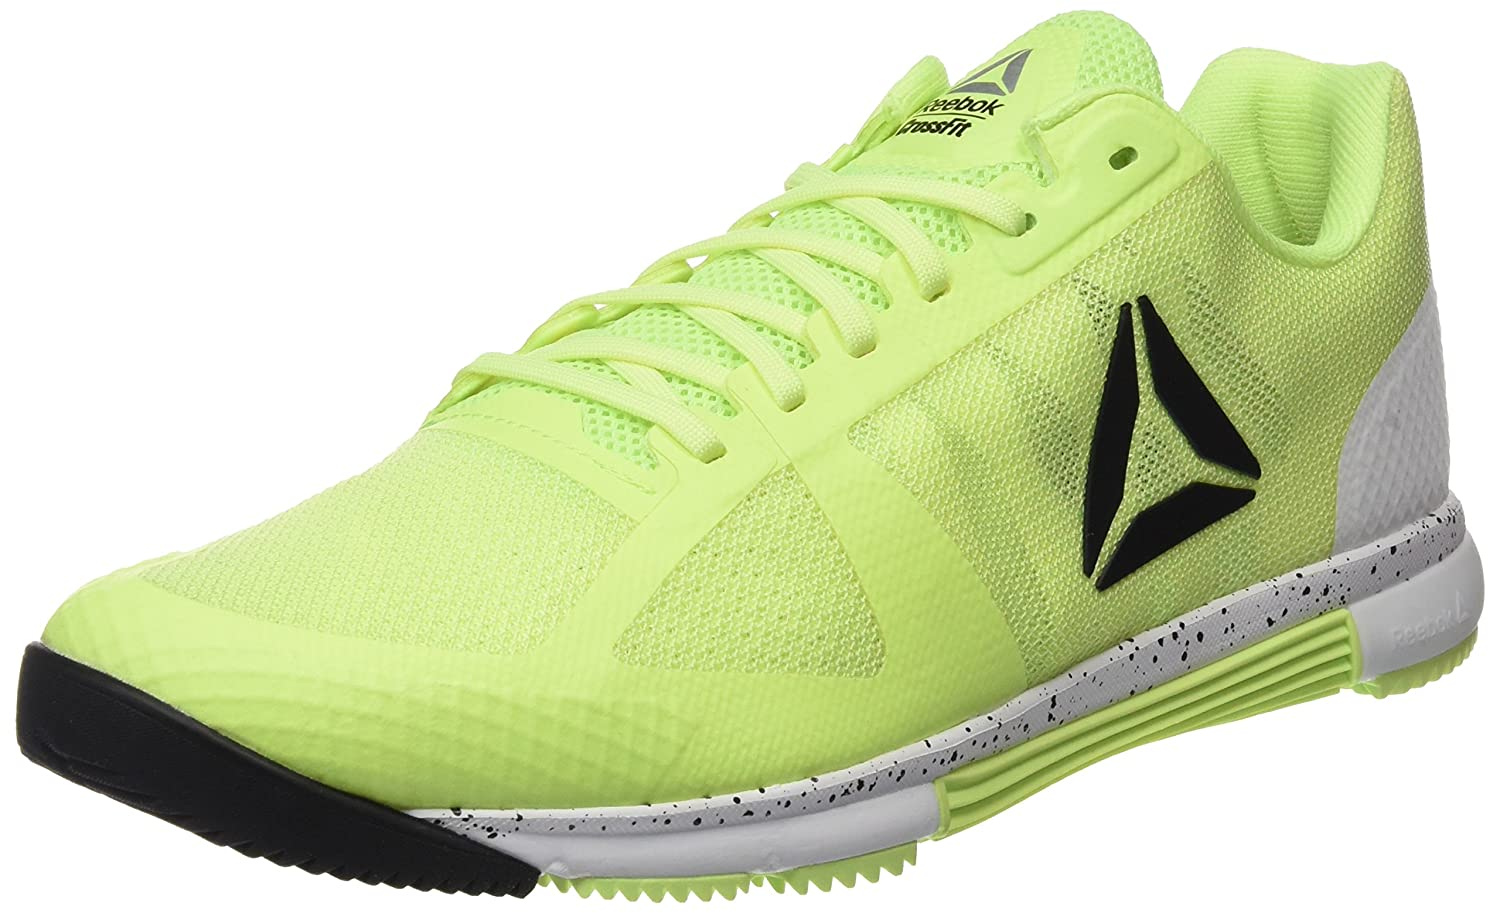 a454b06c015f Reebok Men s R Crossfit Speed Tr 2.0 Fitness Shoes  Amazon.co.uk  Shoes    Bags